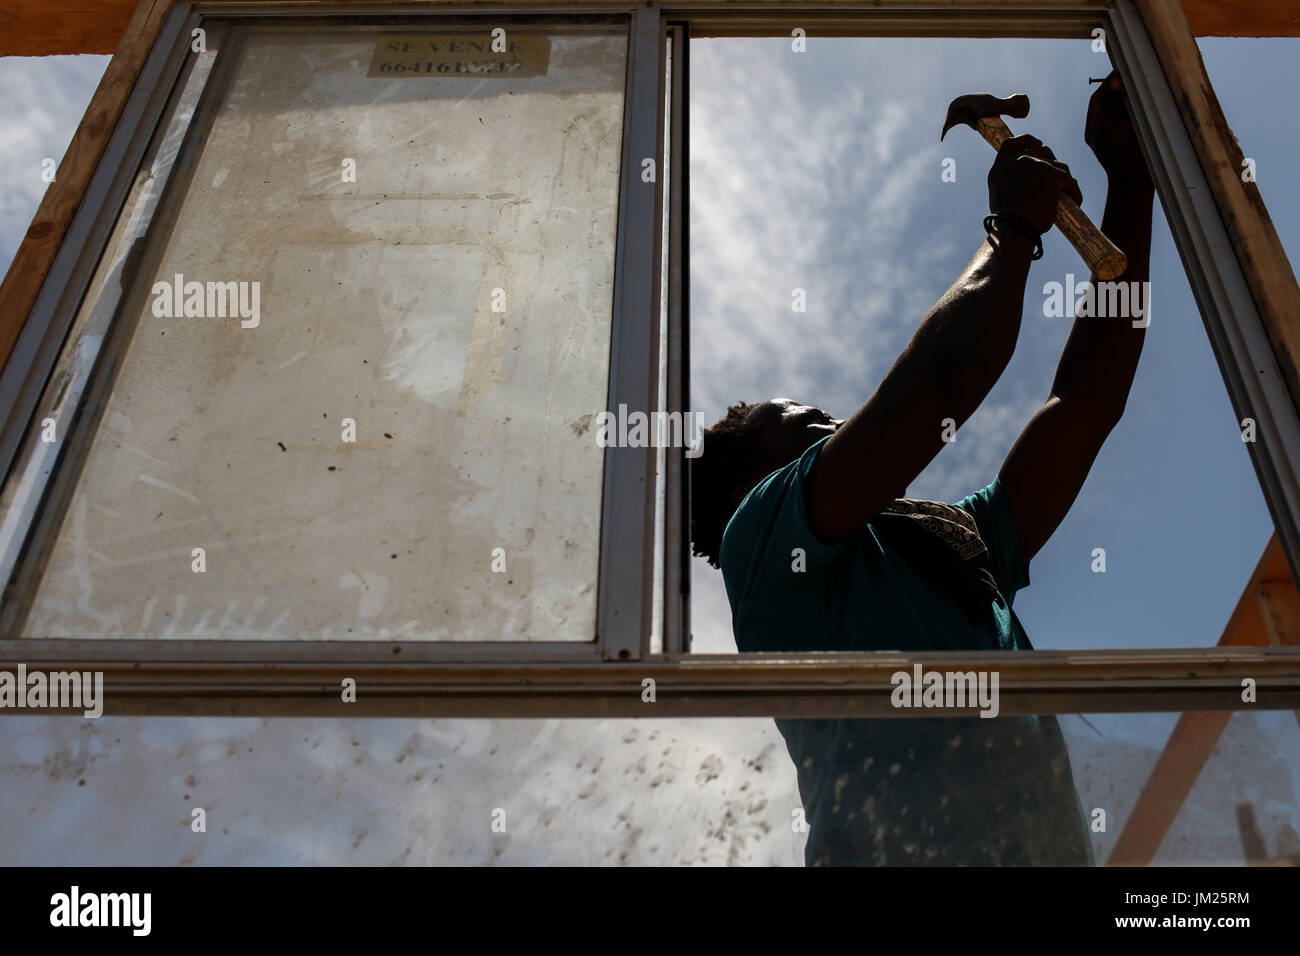 Tijuana, Baja California, Mexico. 19th July, 2017. A Haitian migrant installs a window of a structure along a dry Stock Photo